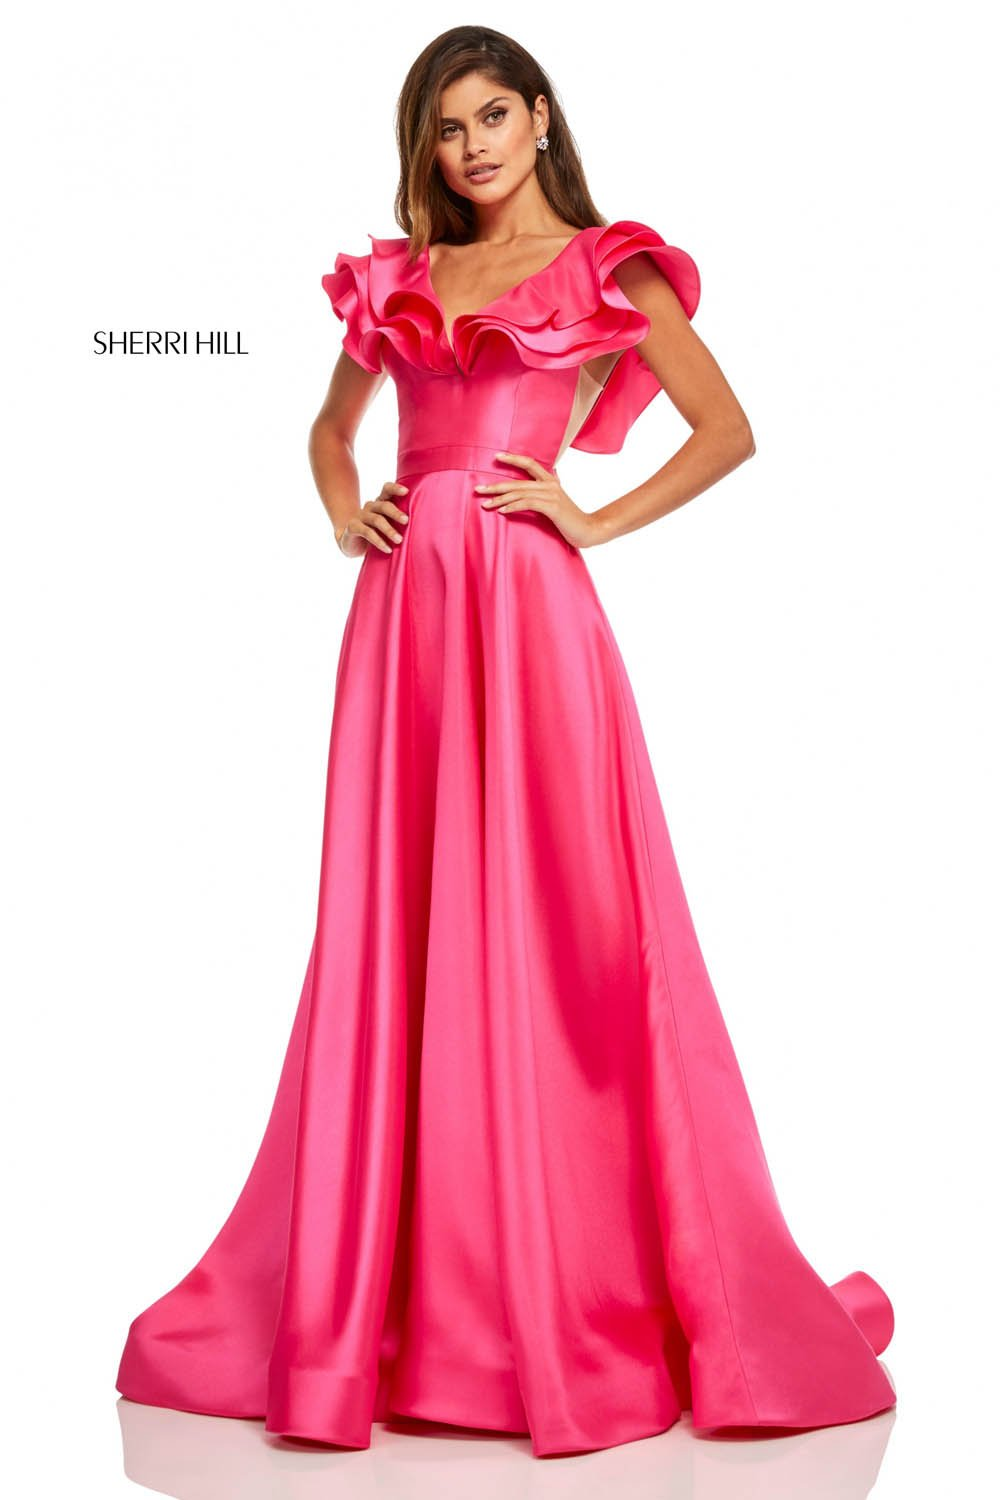 Sherri Hill 52595 prom dress images.  Sherri Hill 52595 is available in these colors: Black, Orange, Red, Emerald, Yellow, Hot Pink, Lilac, Turquoise, Light Blue.